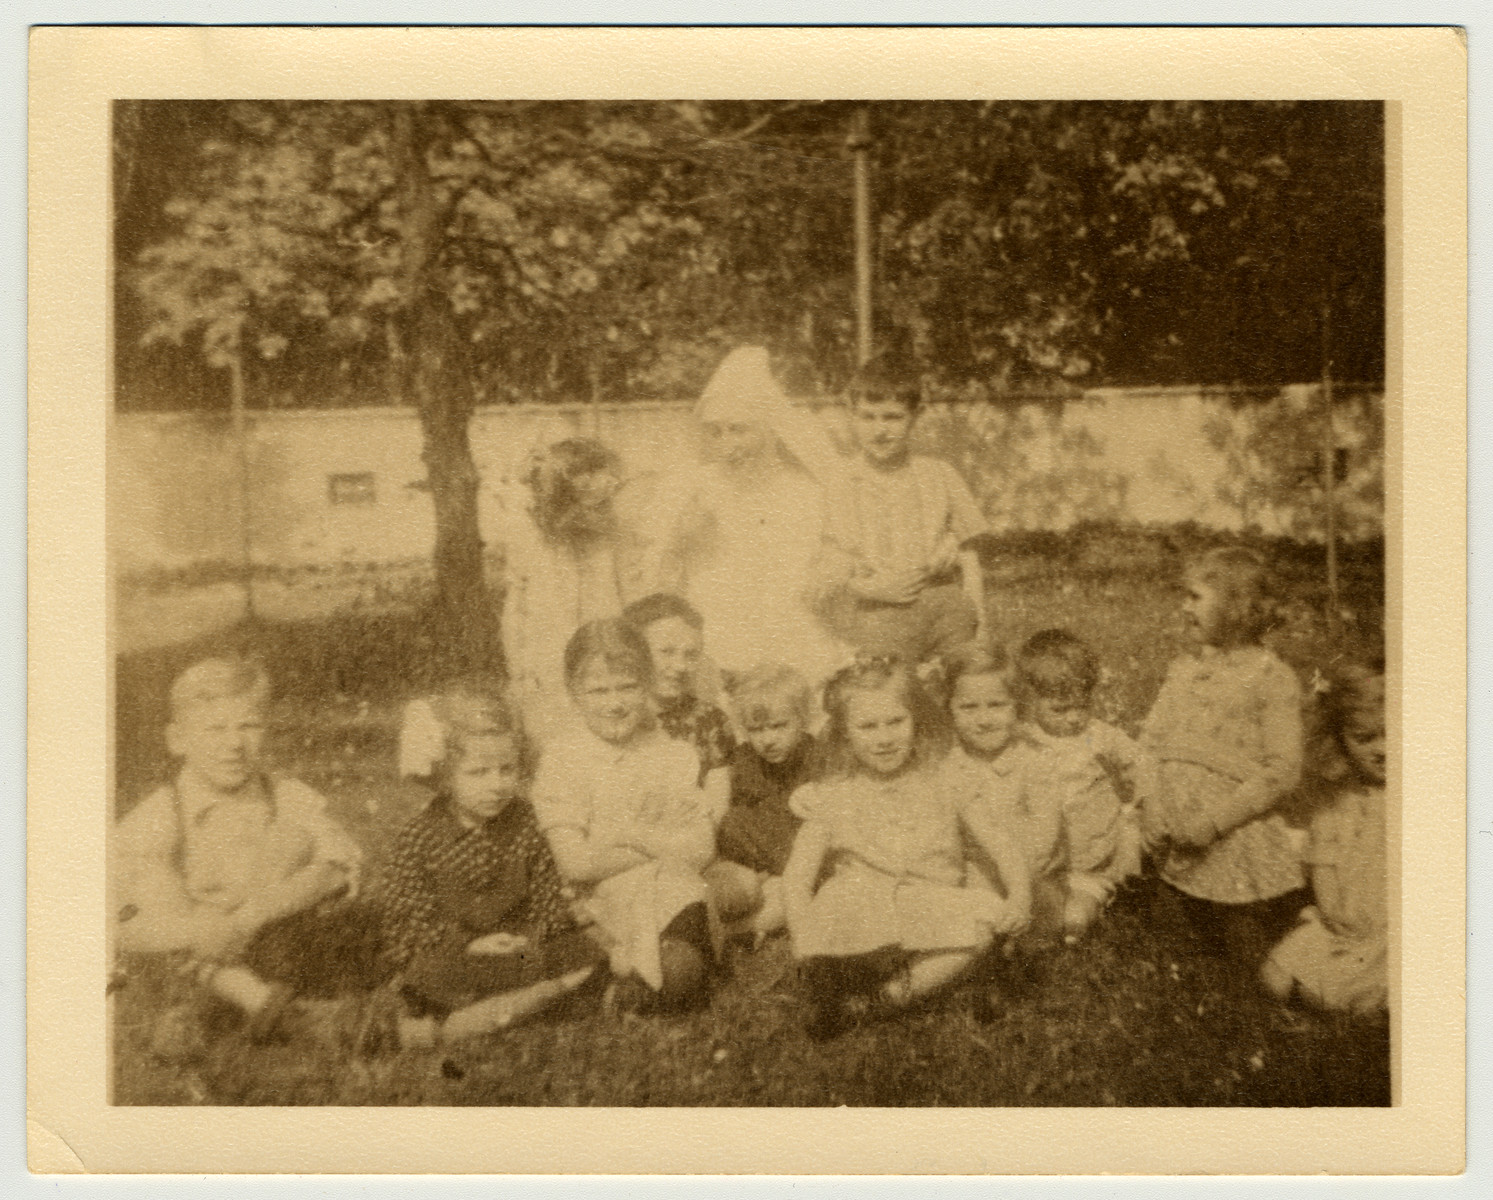 Group portrait of children in hiding in a convent in Czernowogrod.  Among those pictured is Lusia Fenster, back row far left.